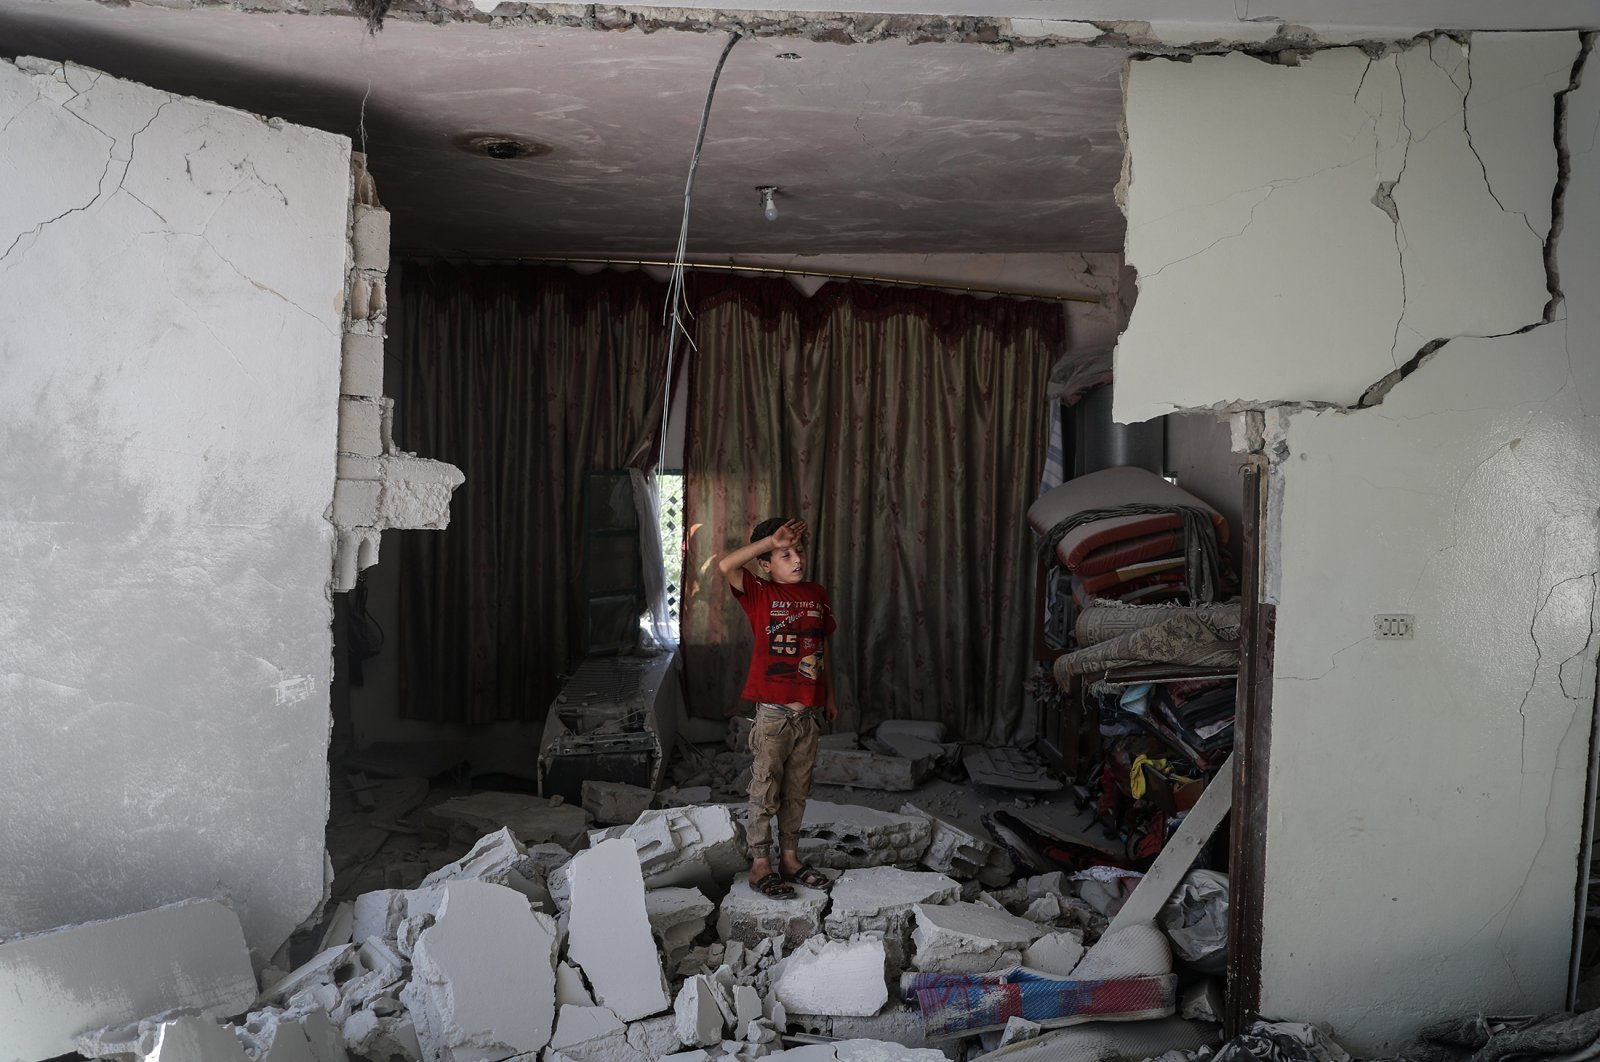 A child inspects a damaged building targeted by a missile in the village of Iblin, Syria, July 15, 2021. (Getty Images)